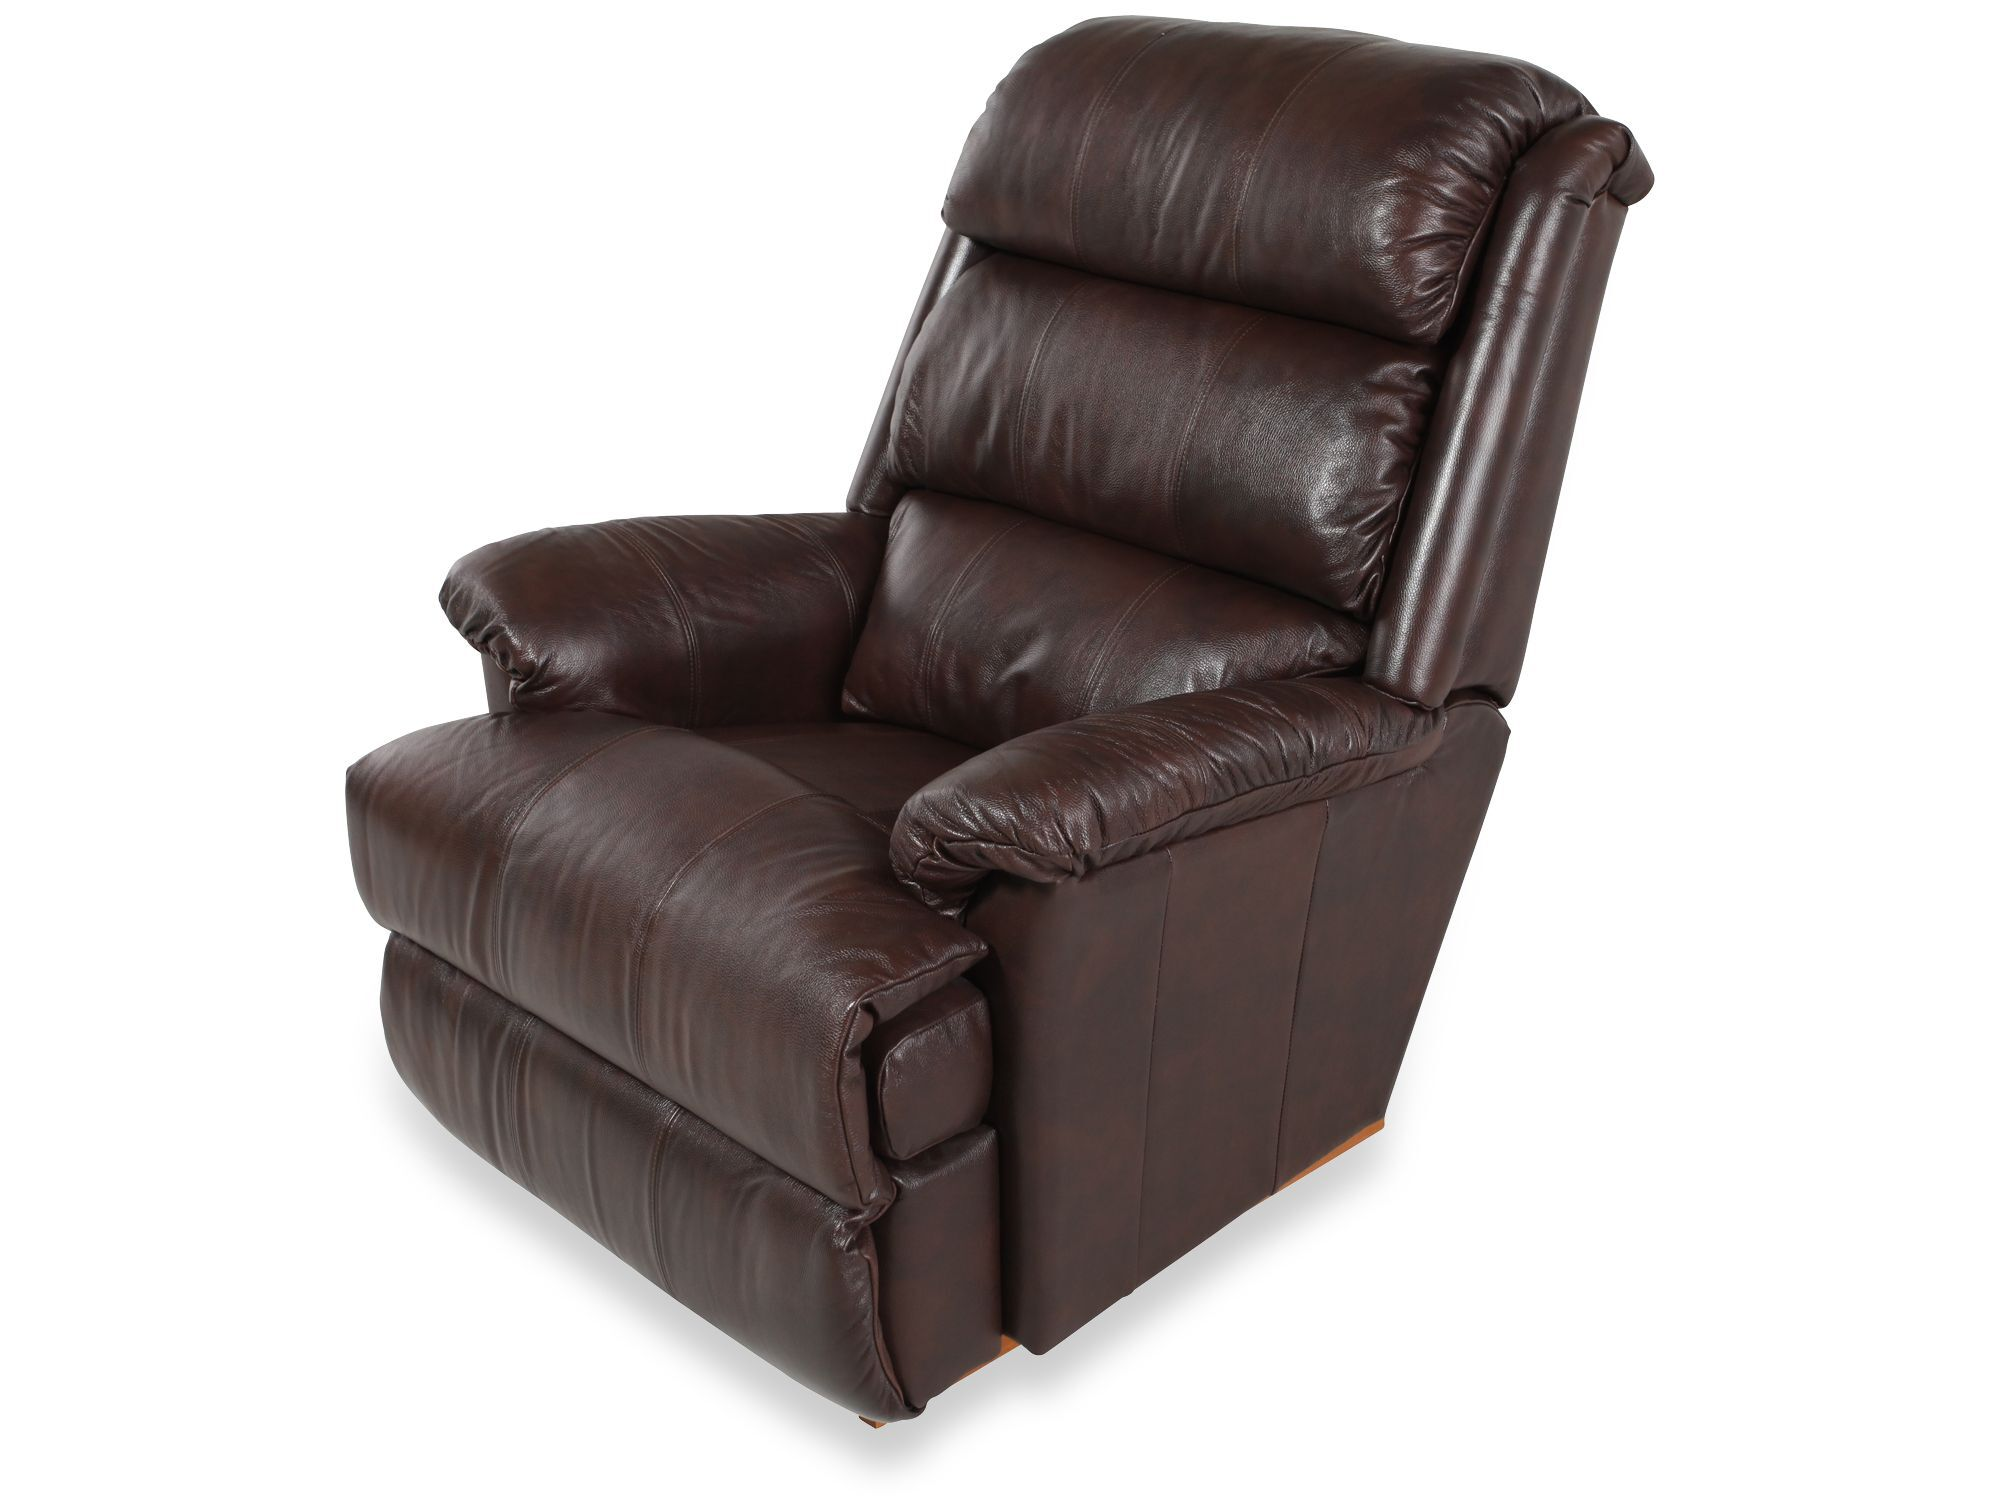 lazboy astor leather rocker recliner - Leather Rocker Recliner